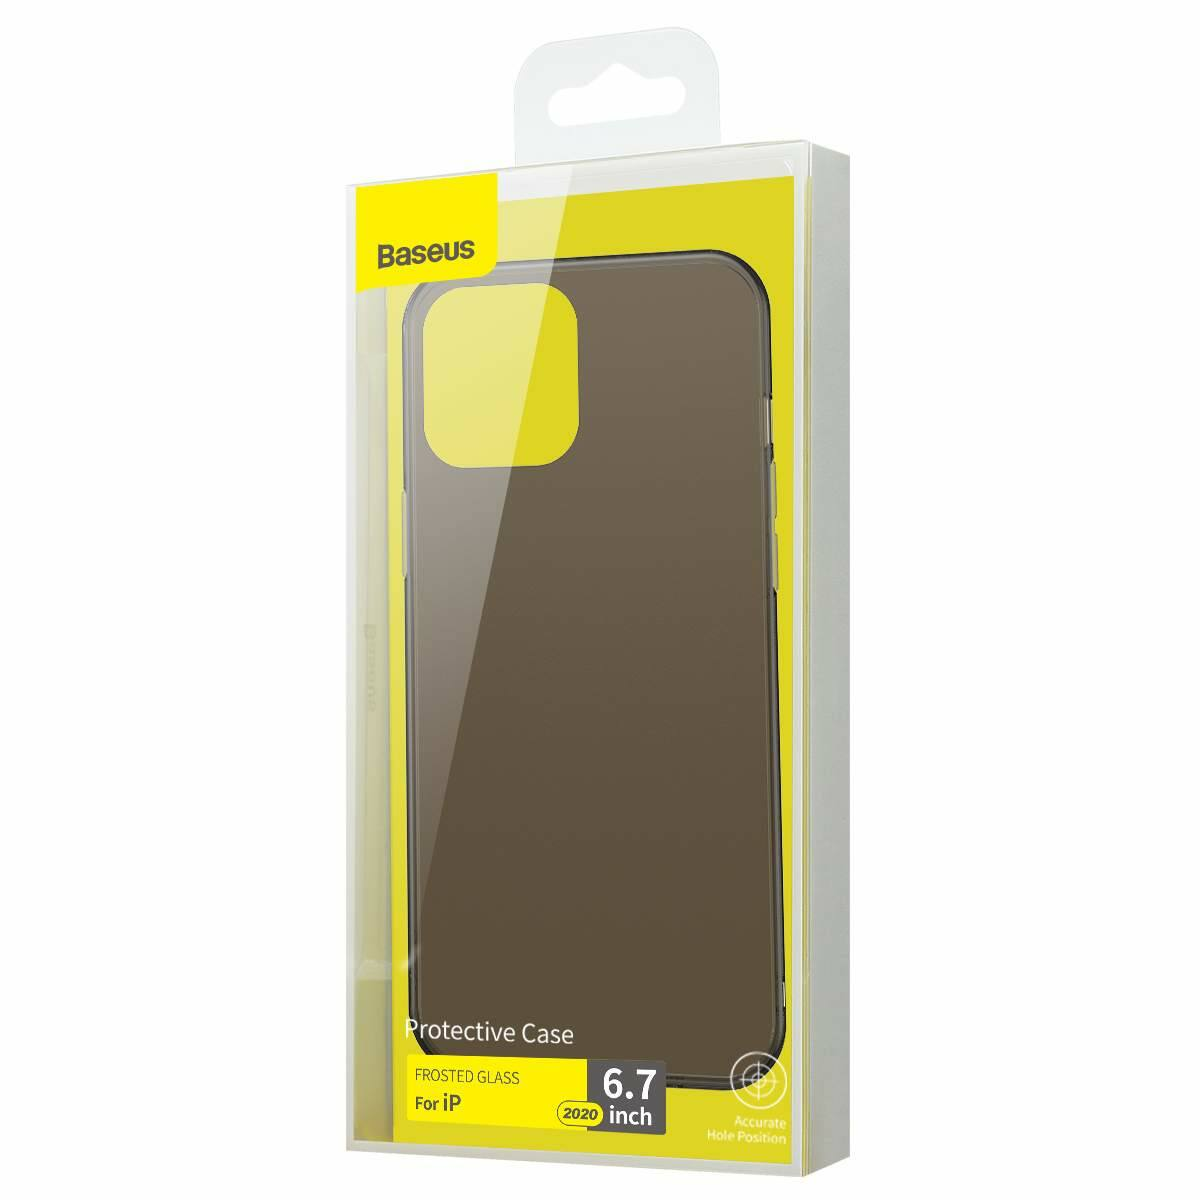 Baseus iPhone 12 Pro Max tok, Frosted Glass, fekete (WIAPIPH67N-WS01)